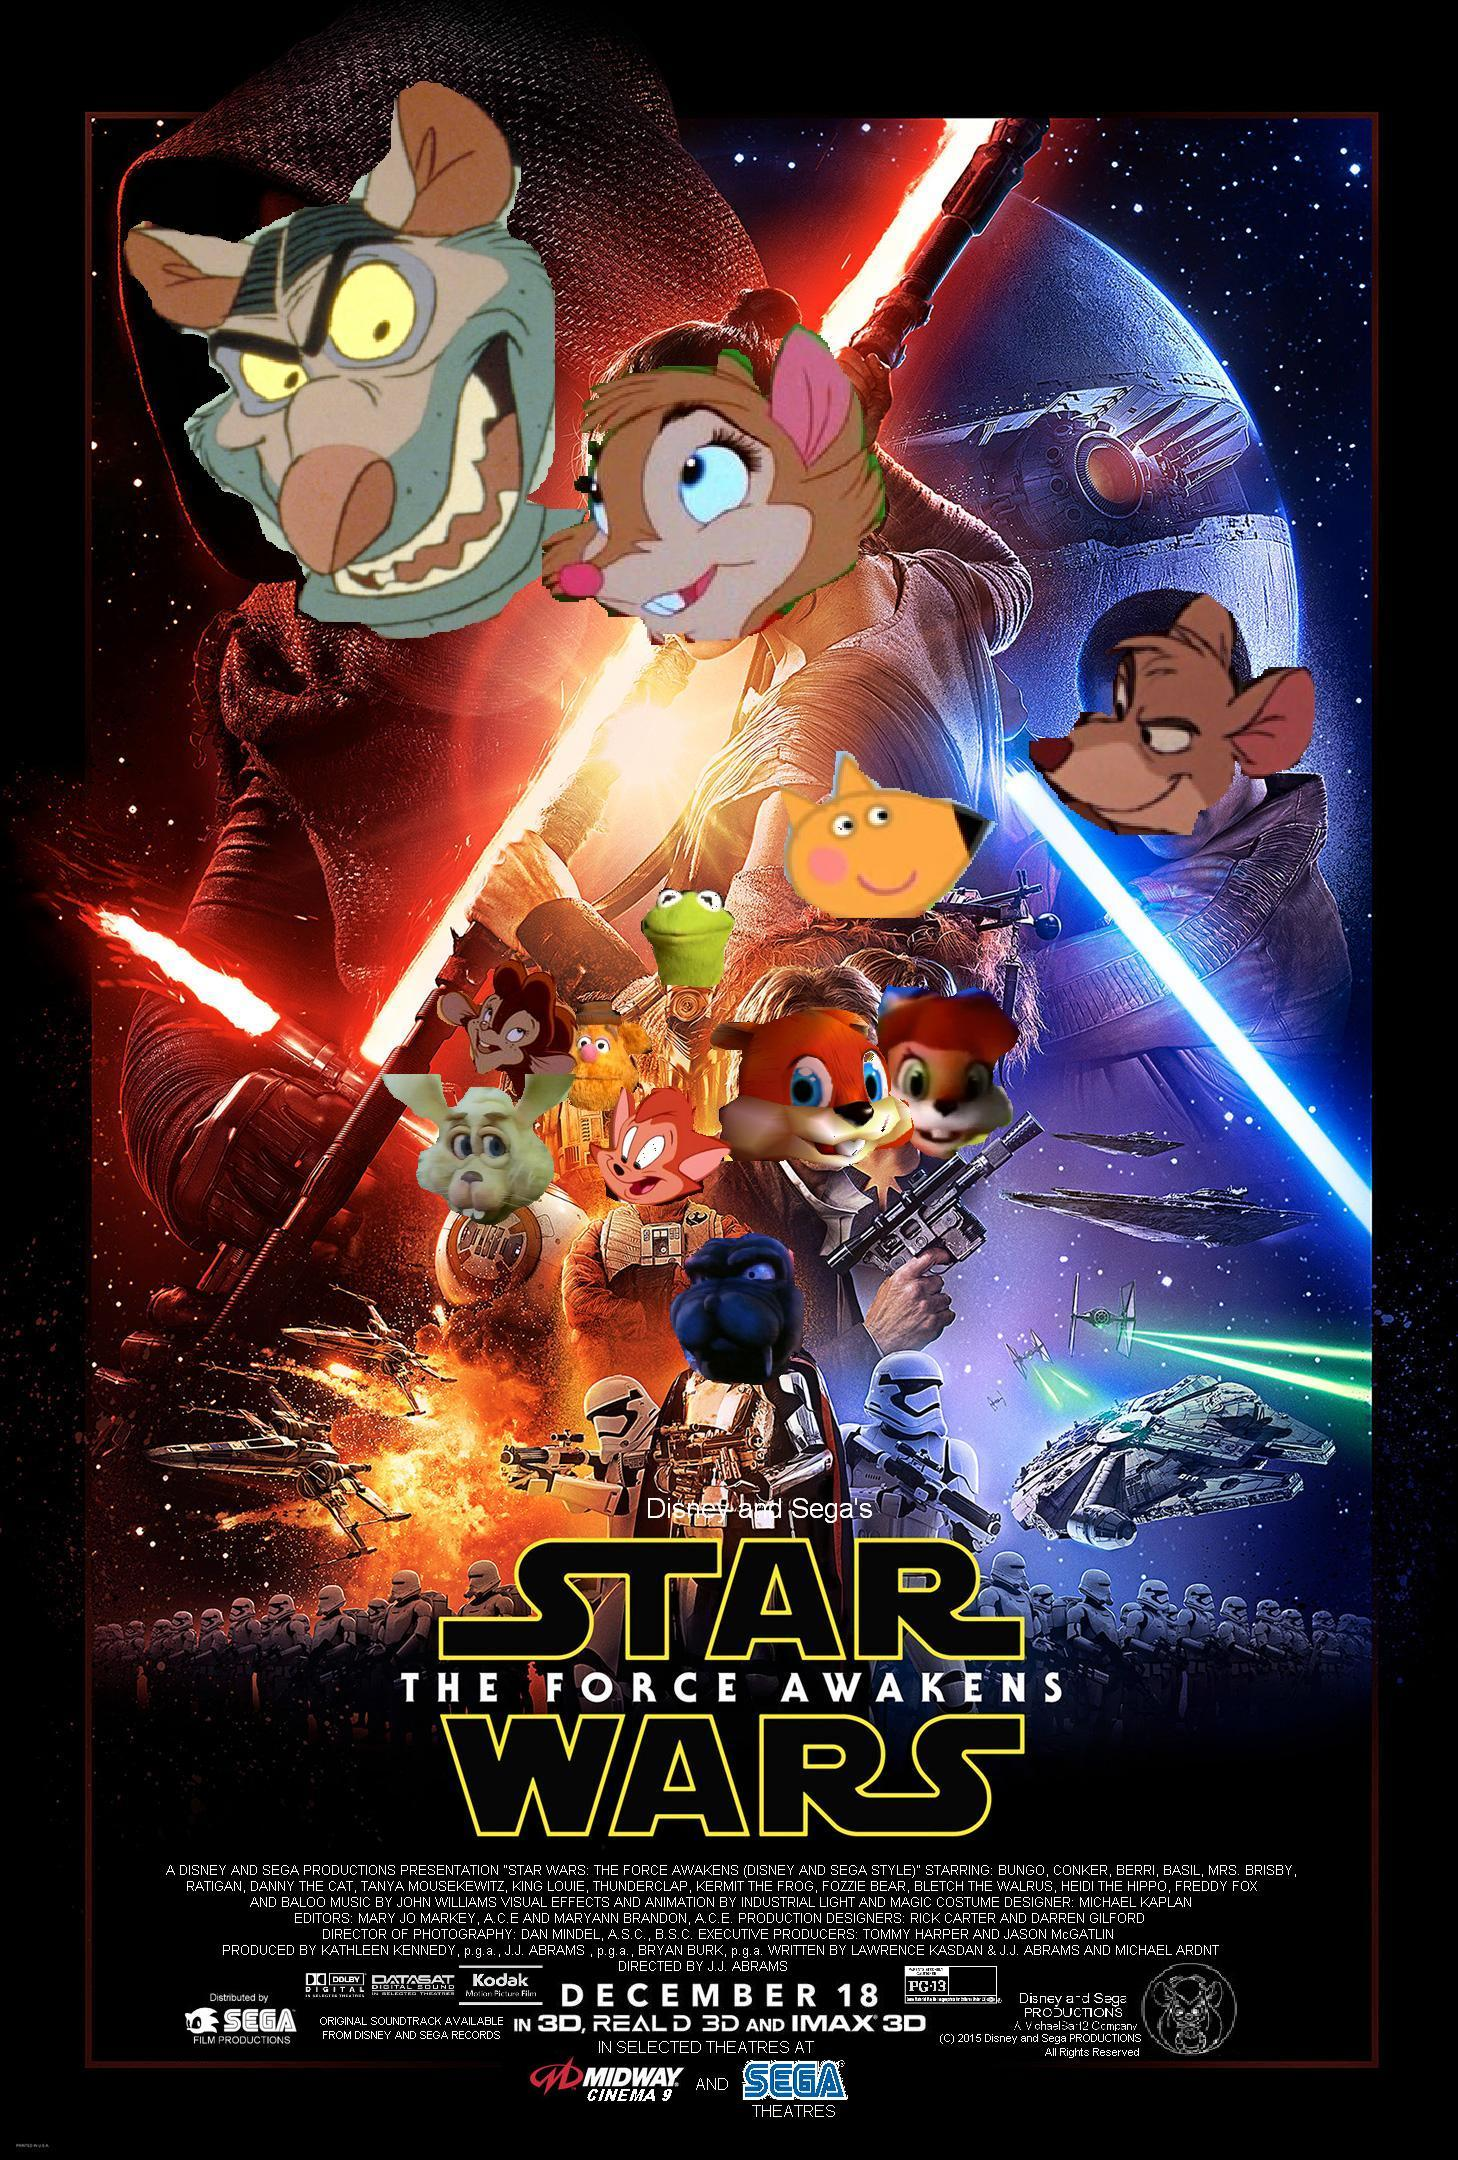 Star Wars Episode 7: The Force Awakens (Disney and Sega Style)